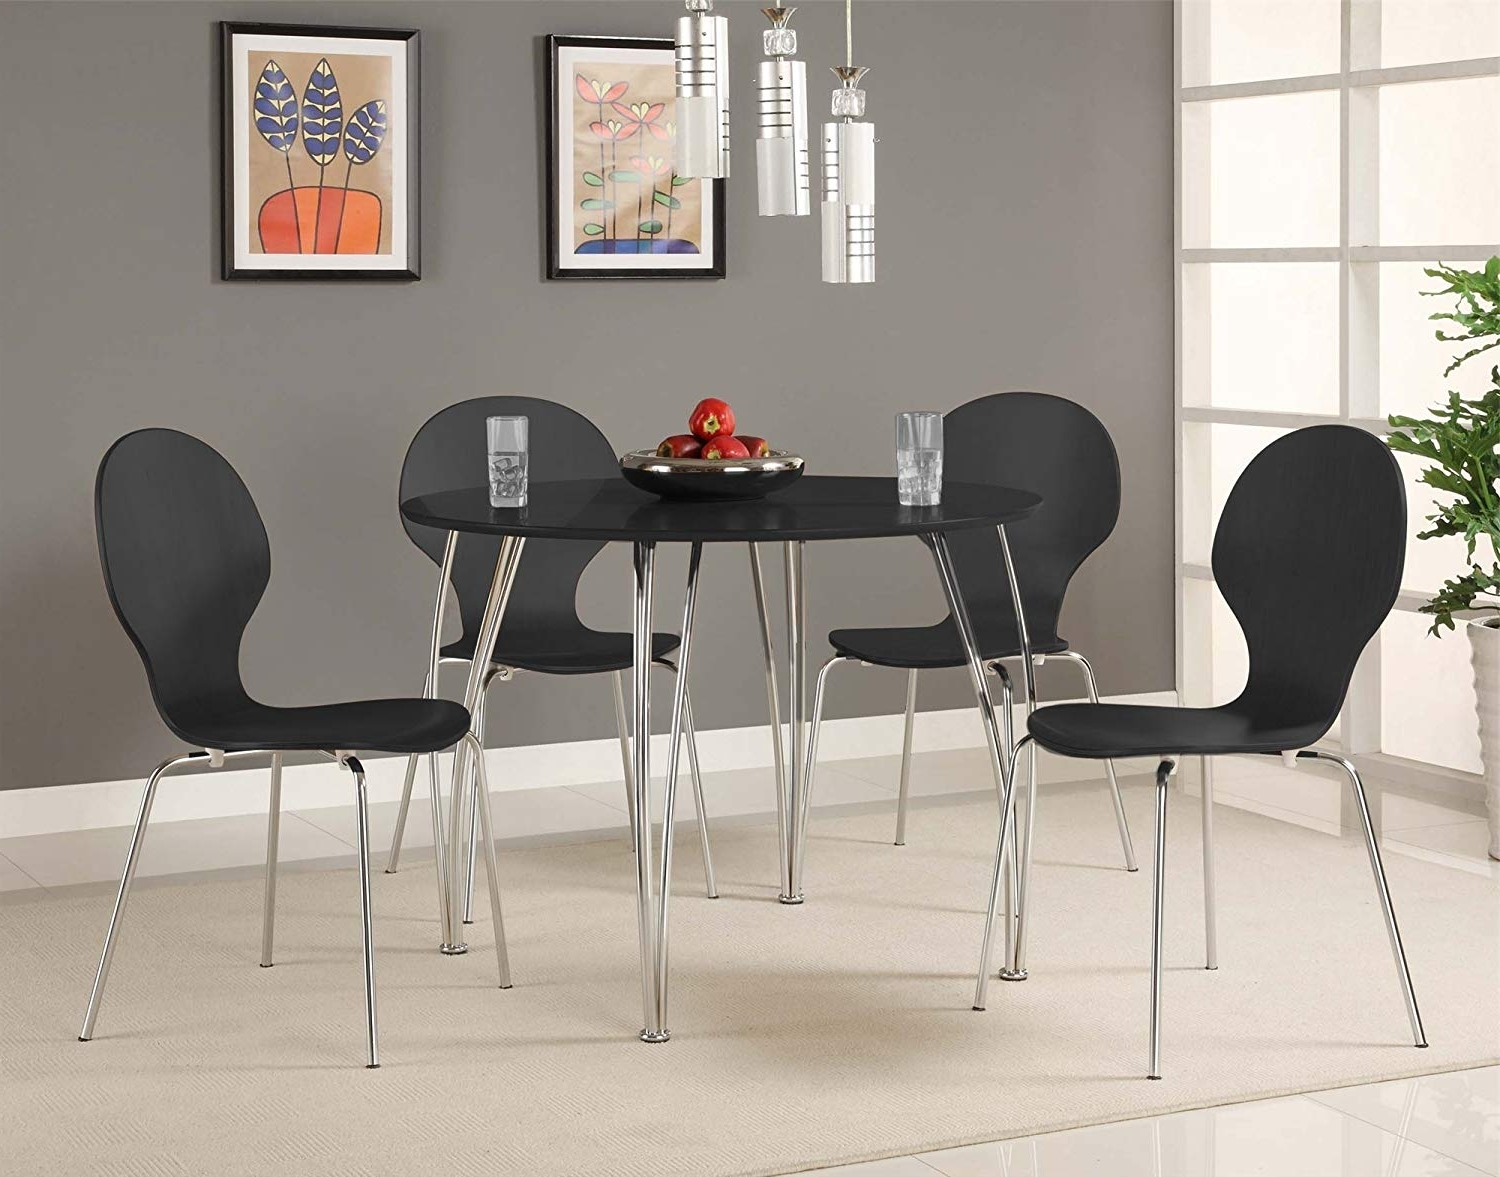 Widely Used Round Acrylic Dining Tables Within Amazon: Dhp Bentwood Round Dining Table Top, Contemporary Design (View 15 of 25)